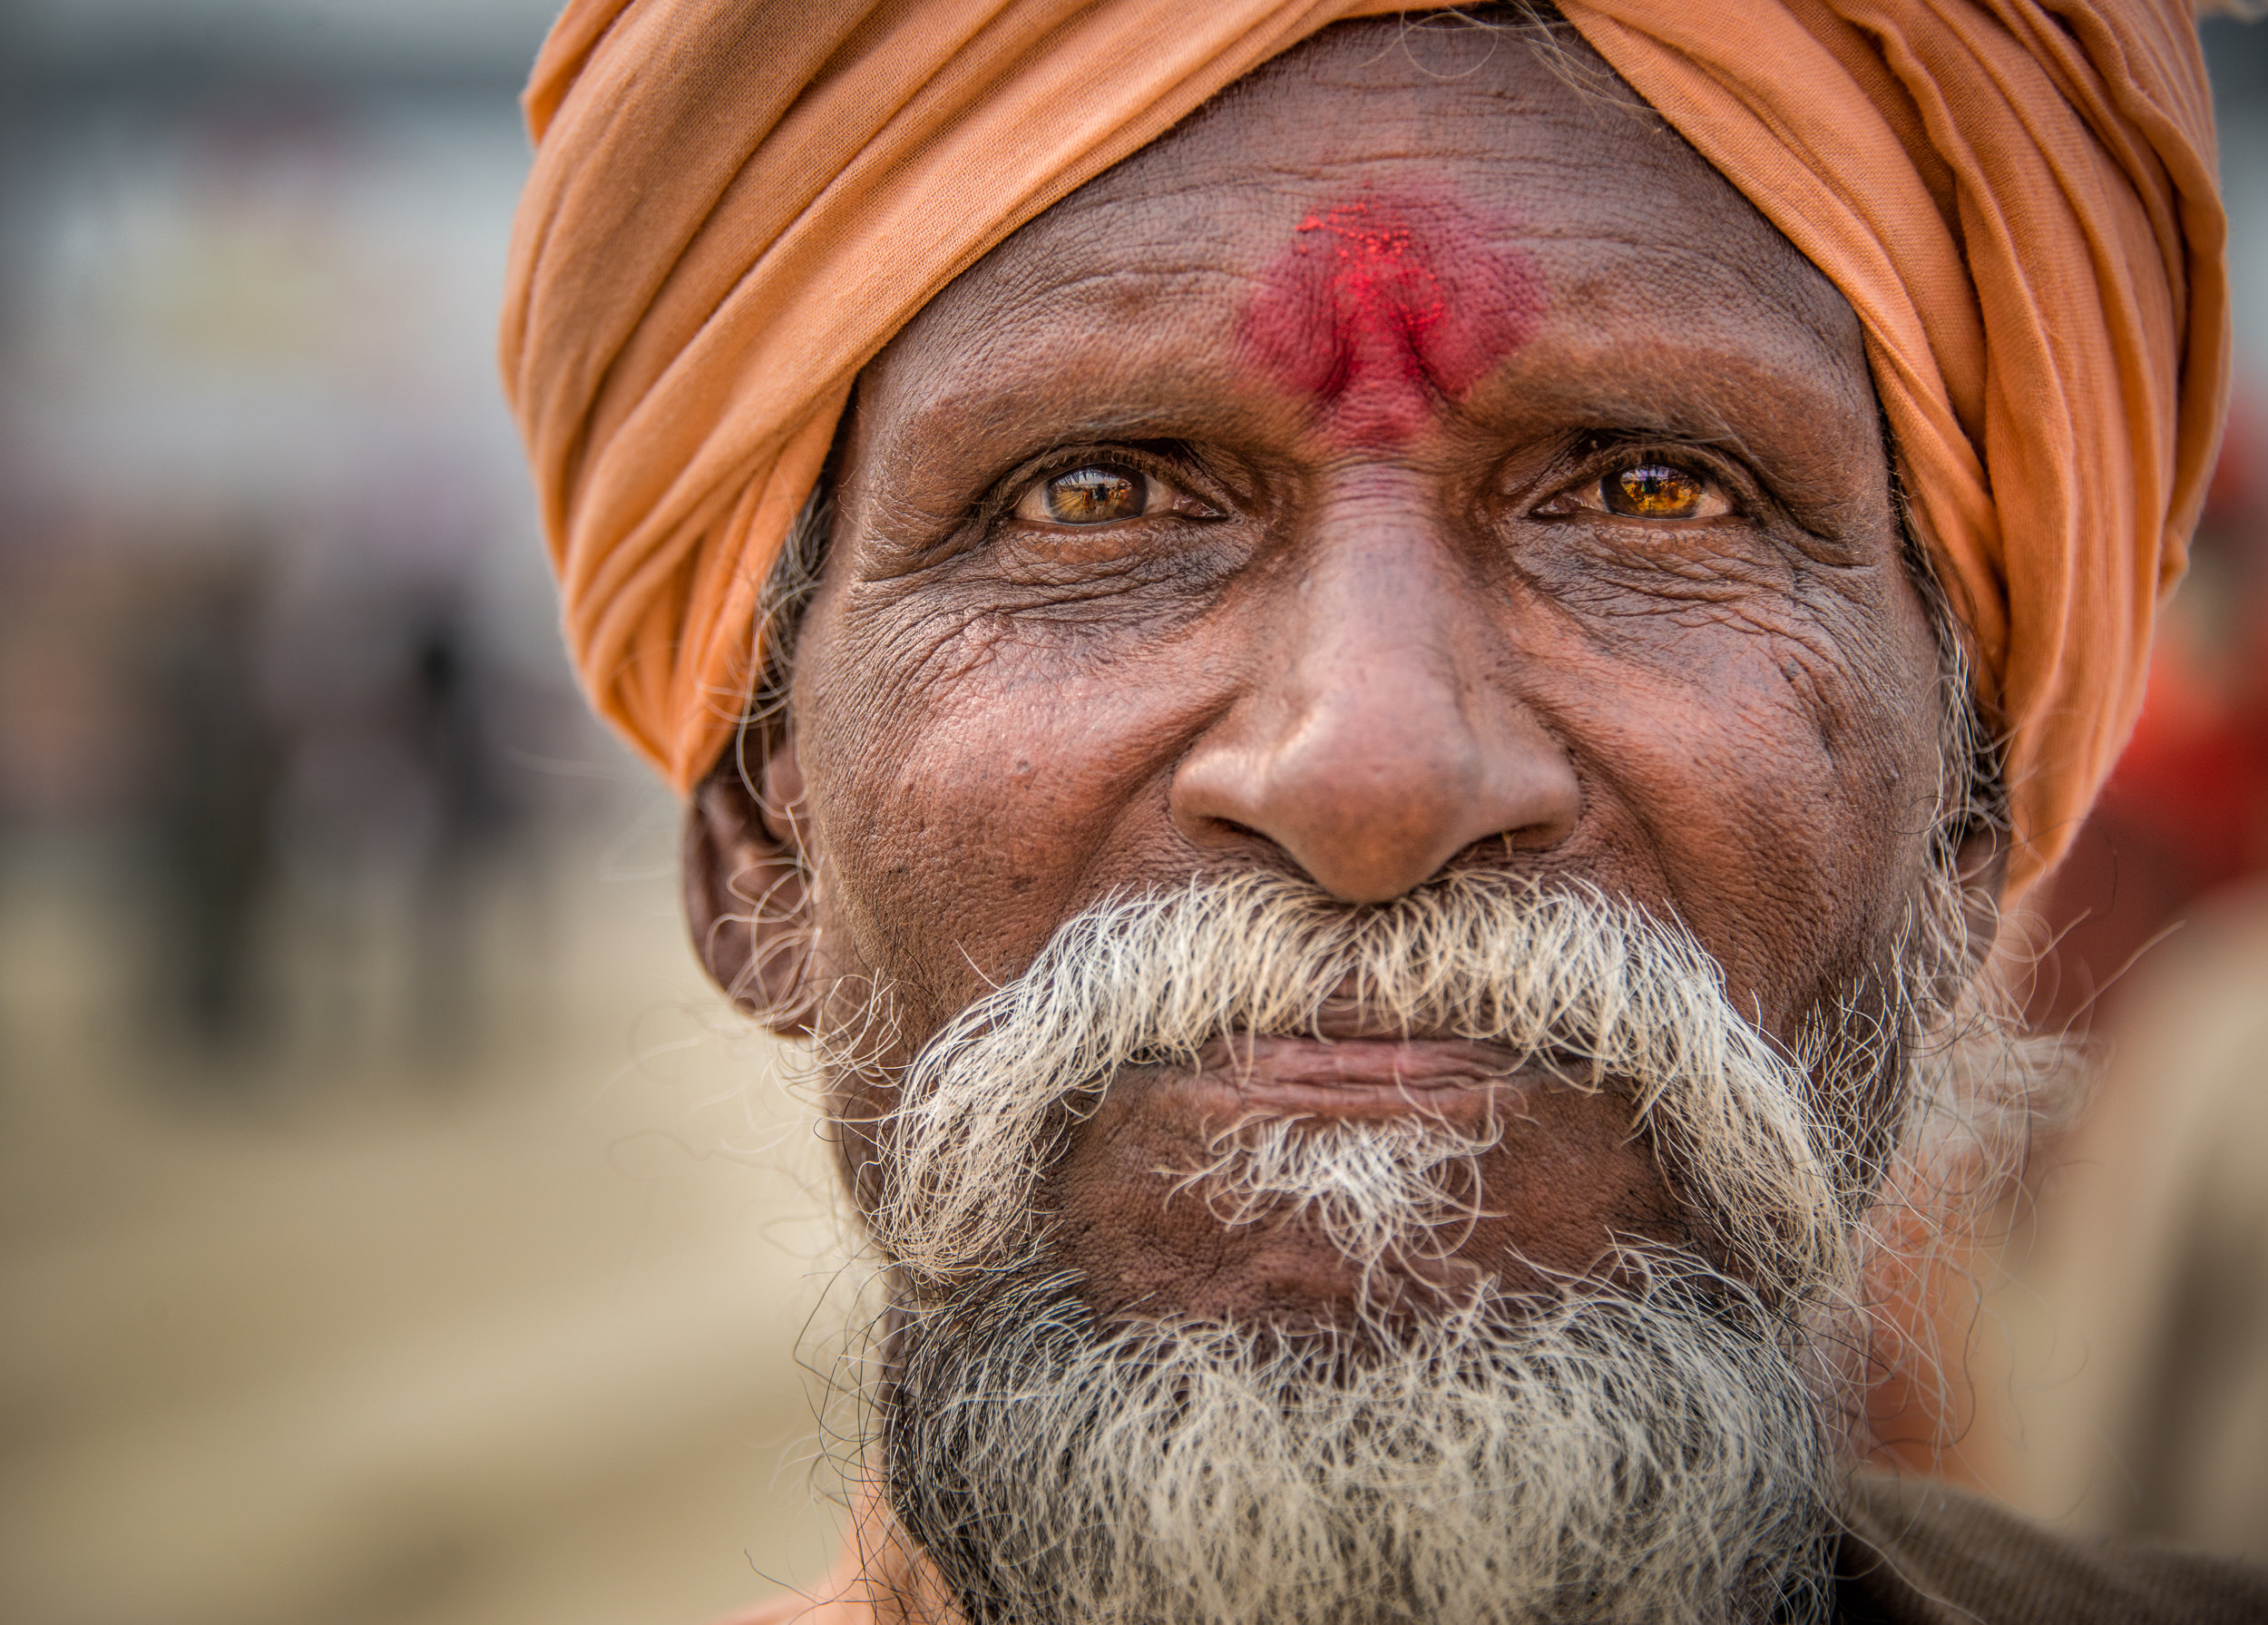 [2013-02-05] India Day9 Kumbh 1 (0475) NIKON D800-Edit.jpg